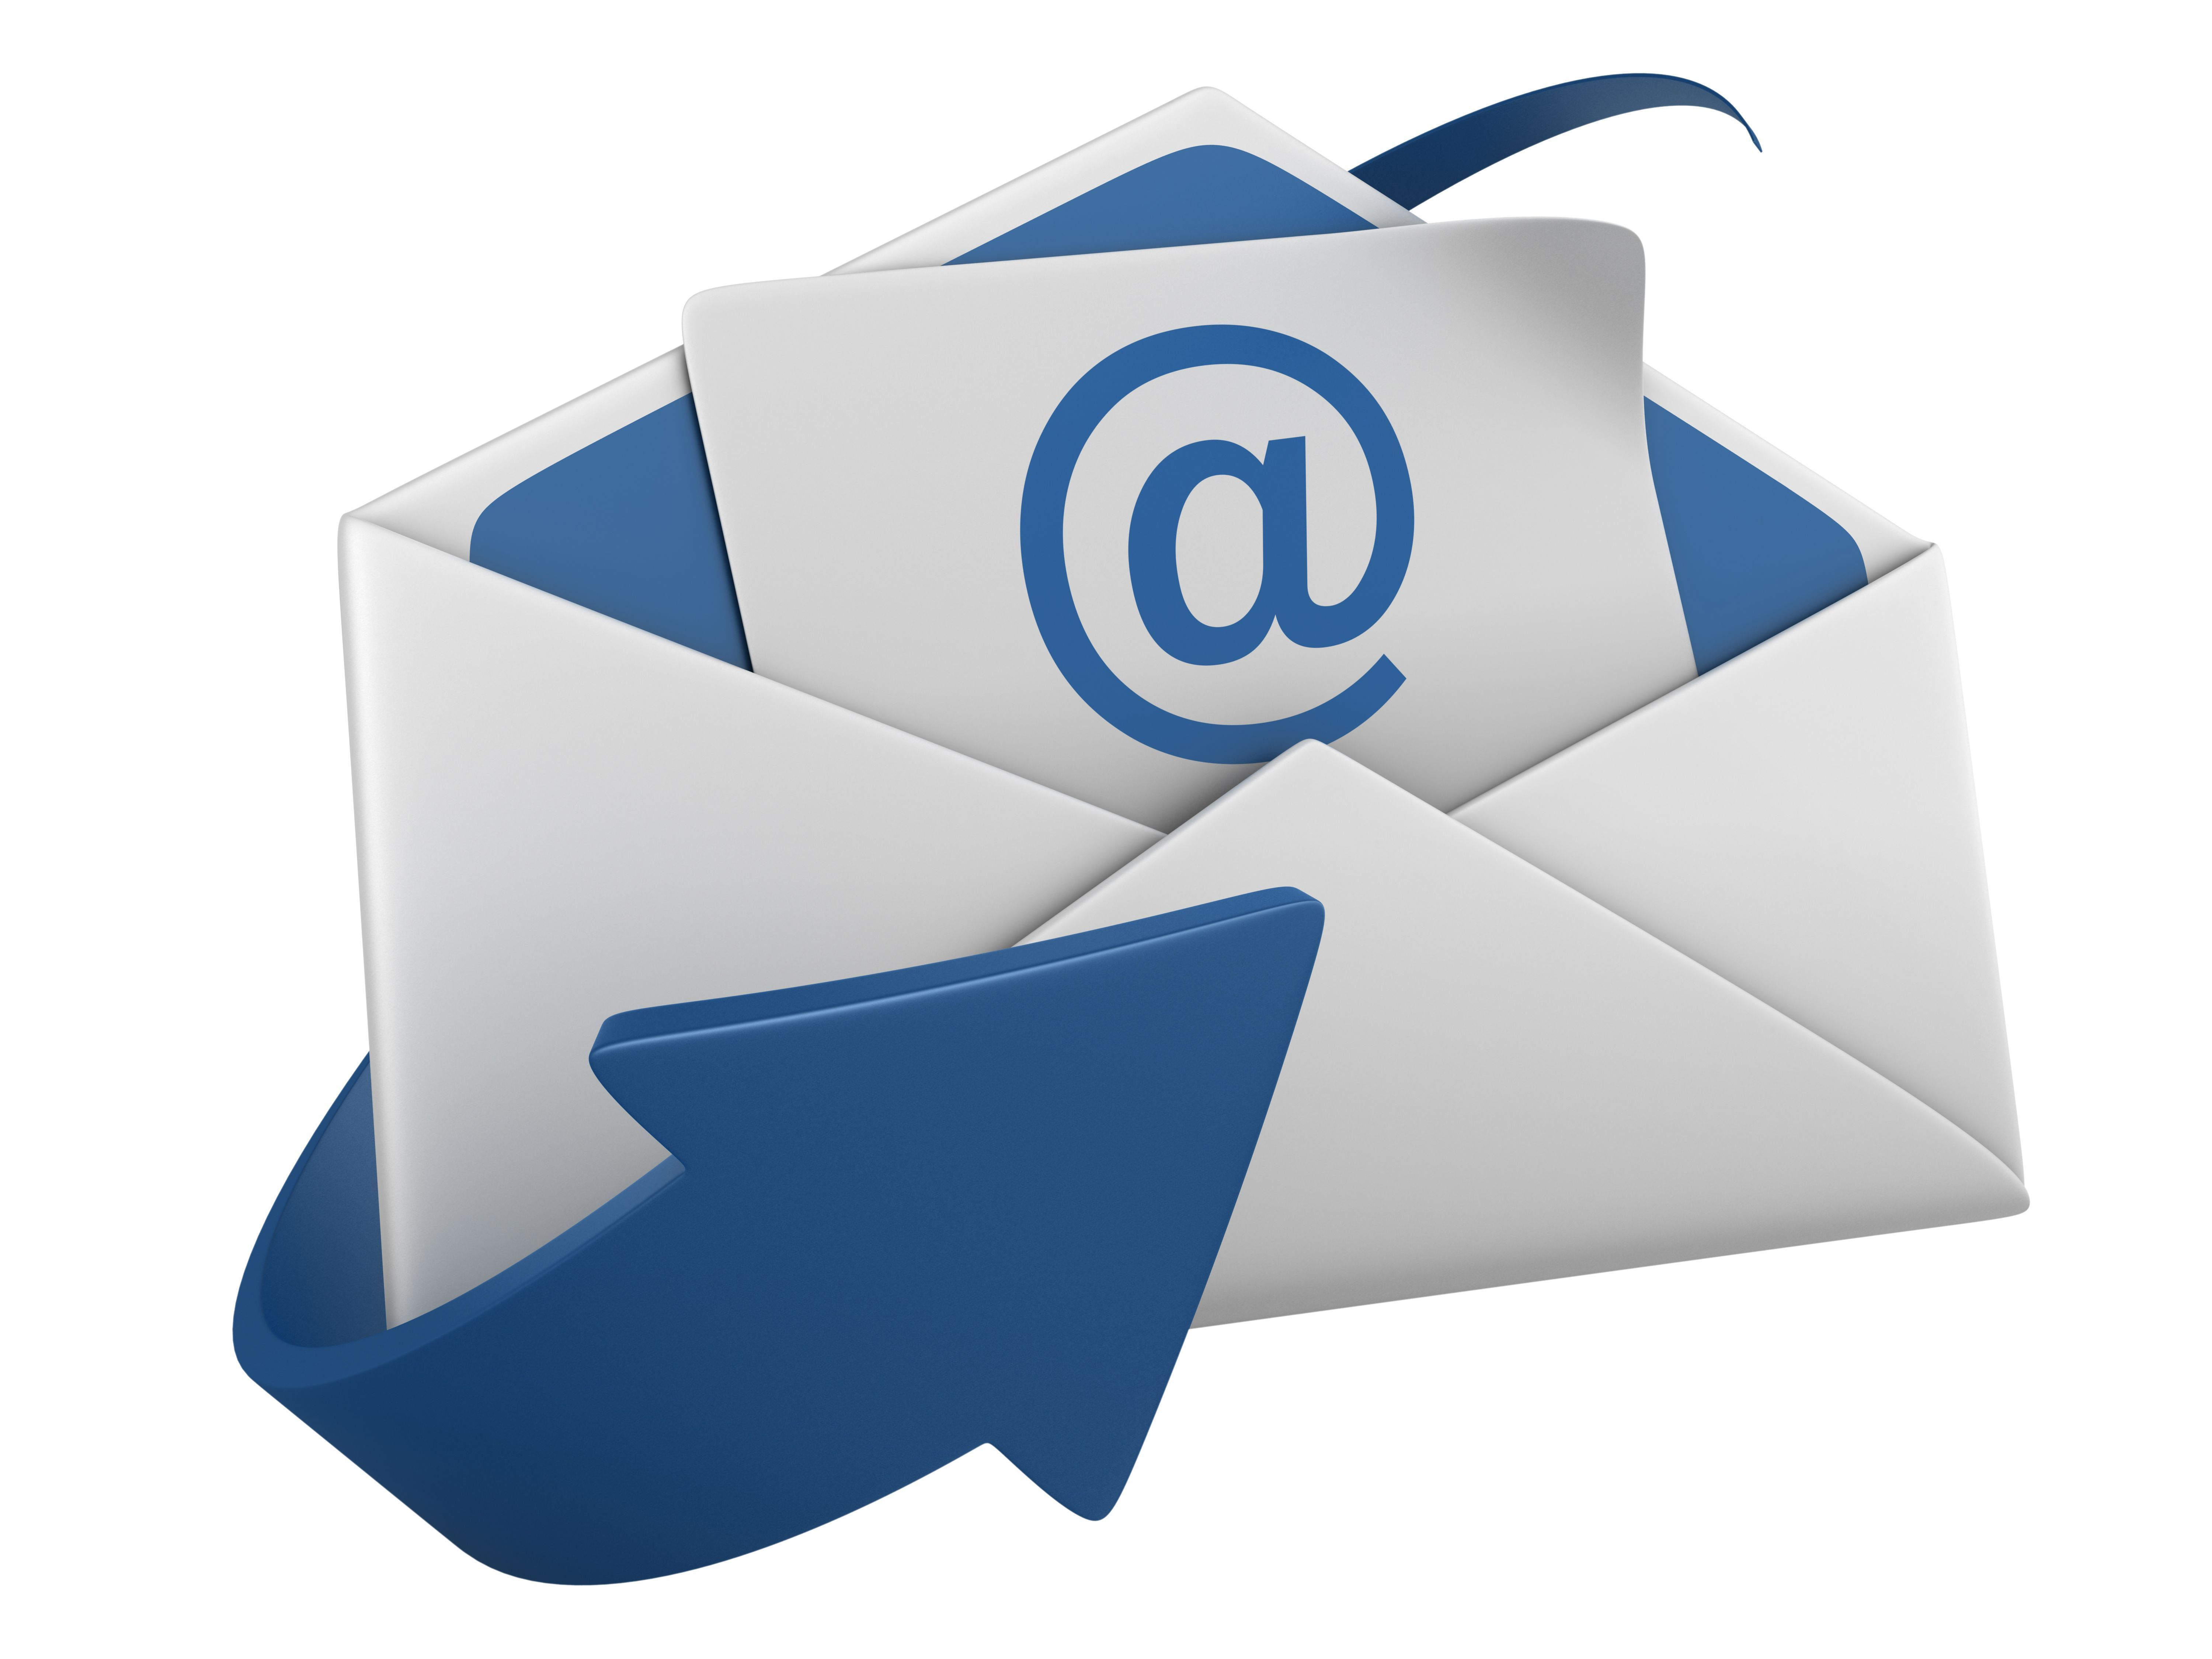 How To Email Cover Letter And Resume Here Are Some Tips On Sending An Email Cover Letter With Sample .